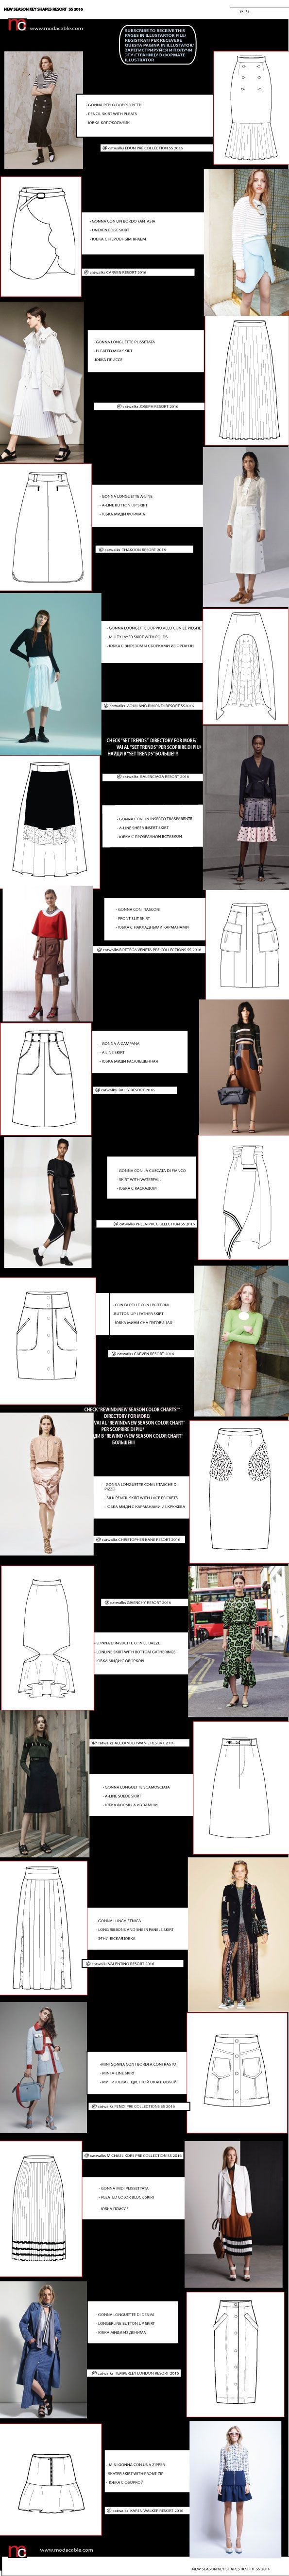 all the fashion trends, flats, colors, moodboards only at www.modacable.com, join us and get the free access to all the files!!!